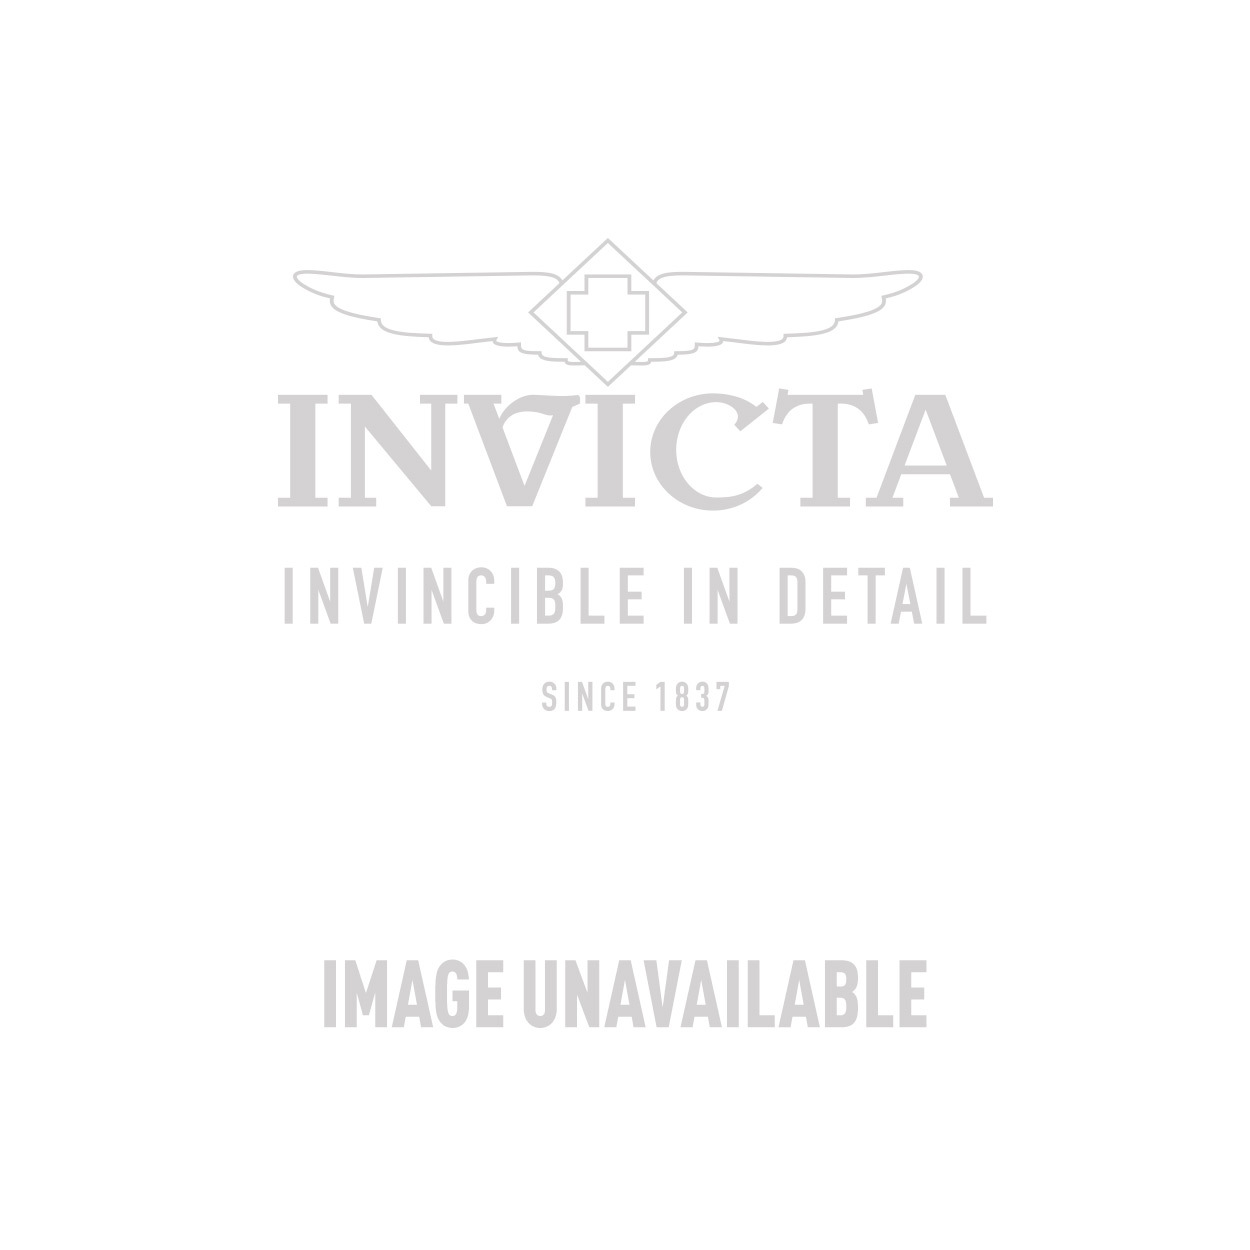 Invicta Pro Diver Swiss Movement Quartz Watch - Gold case with Gold tone Stainless Steel band - Model 9312